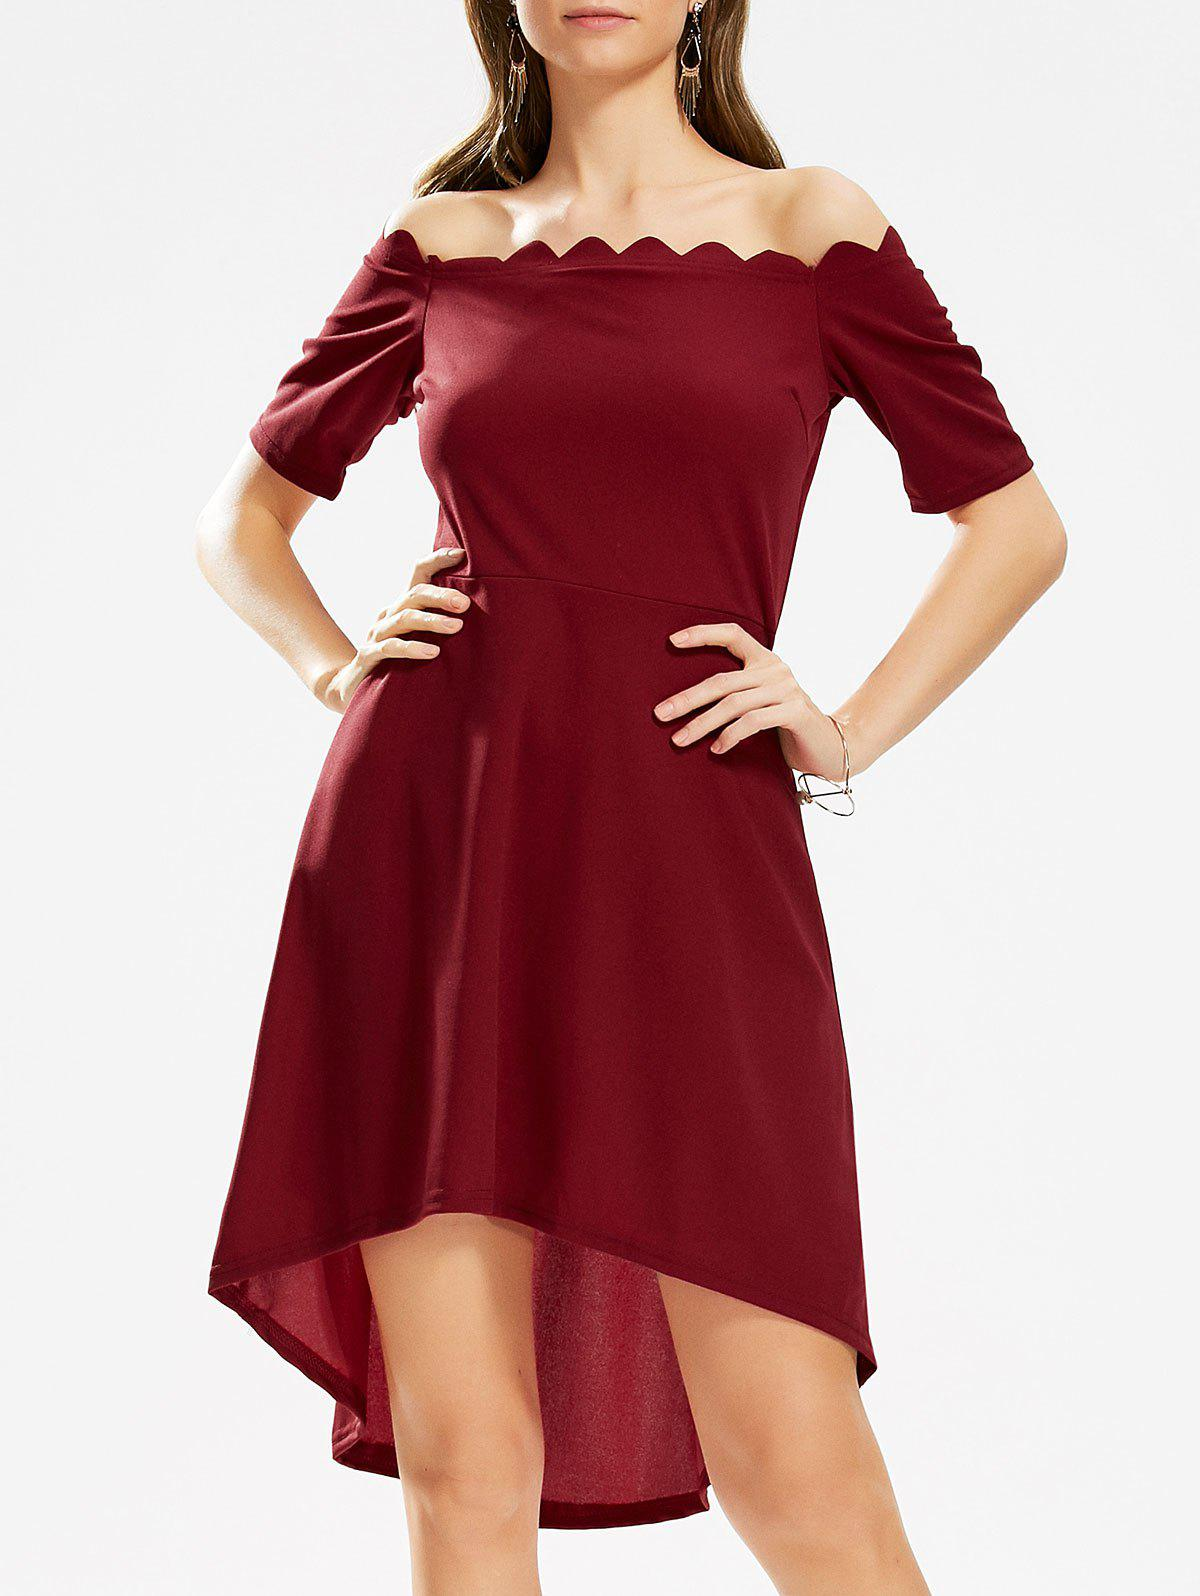 Off The Shoulder Robe à bas prix à bas prix - Rouge vineux L